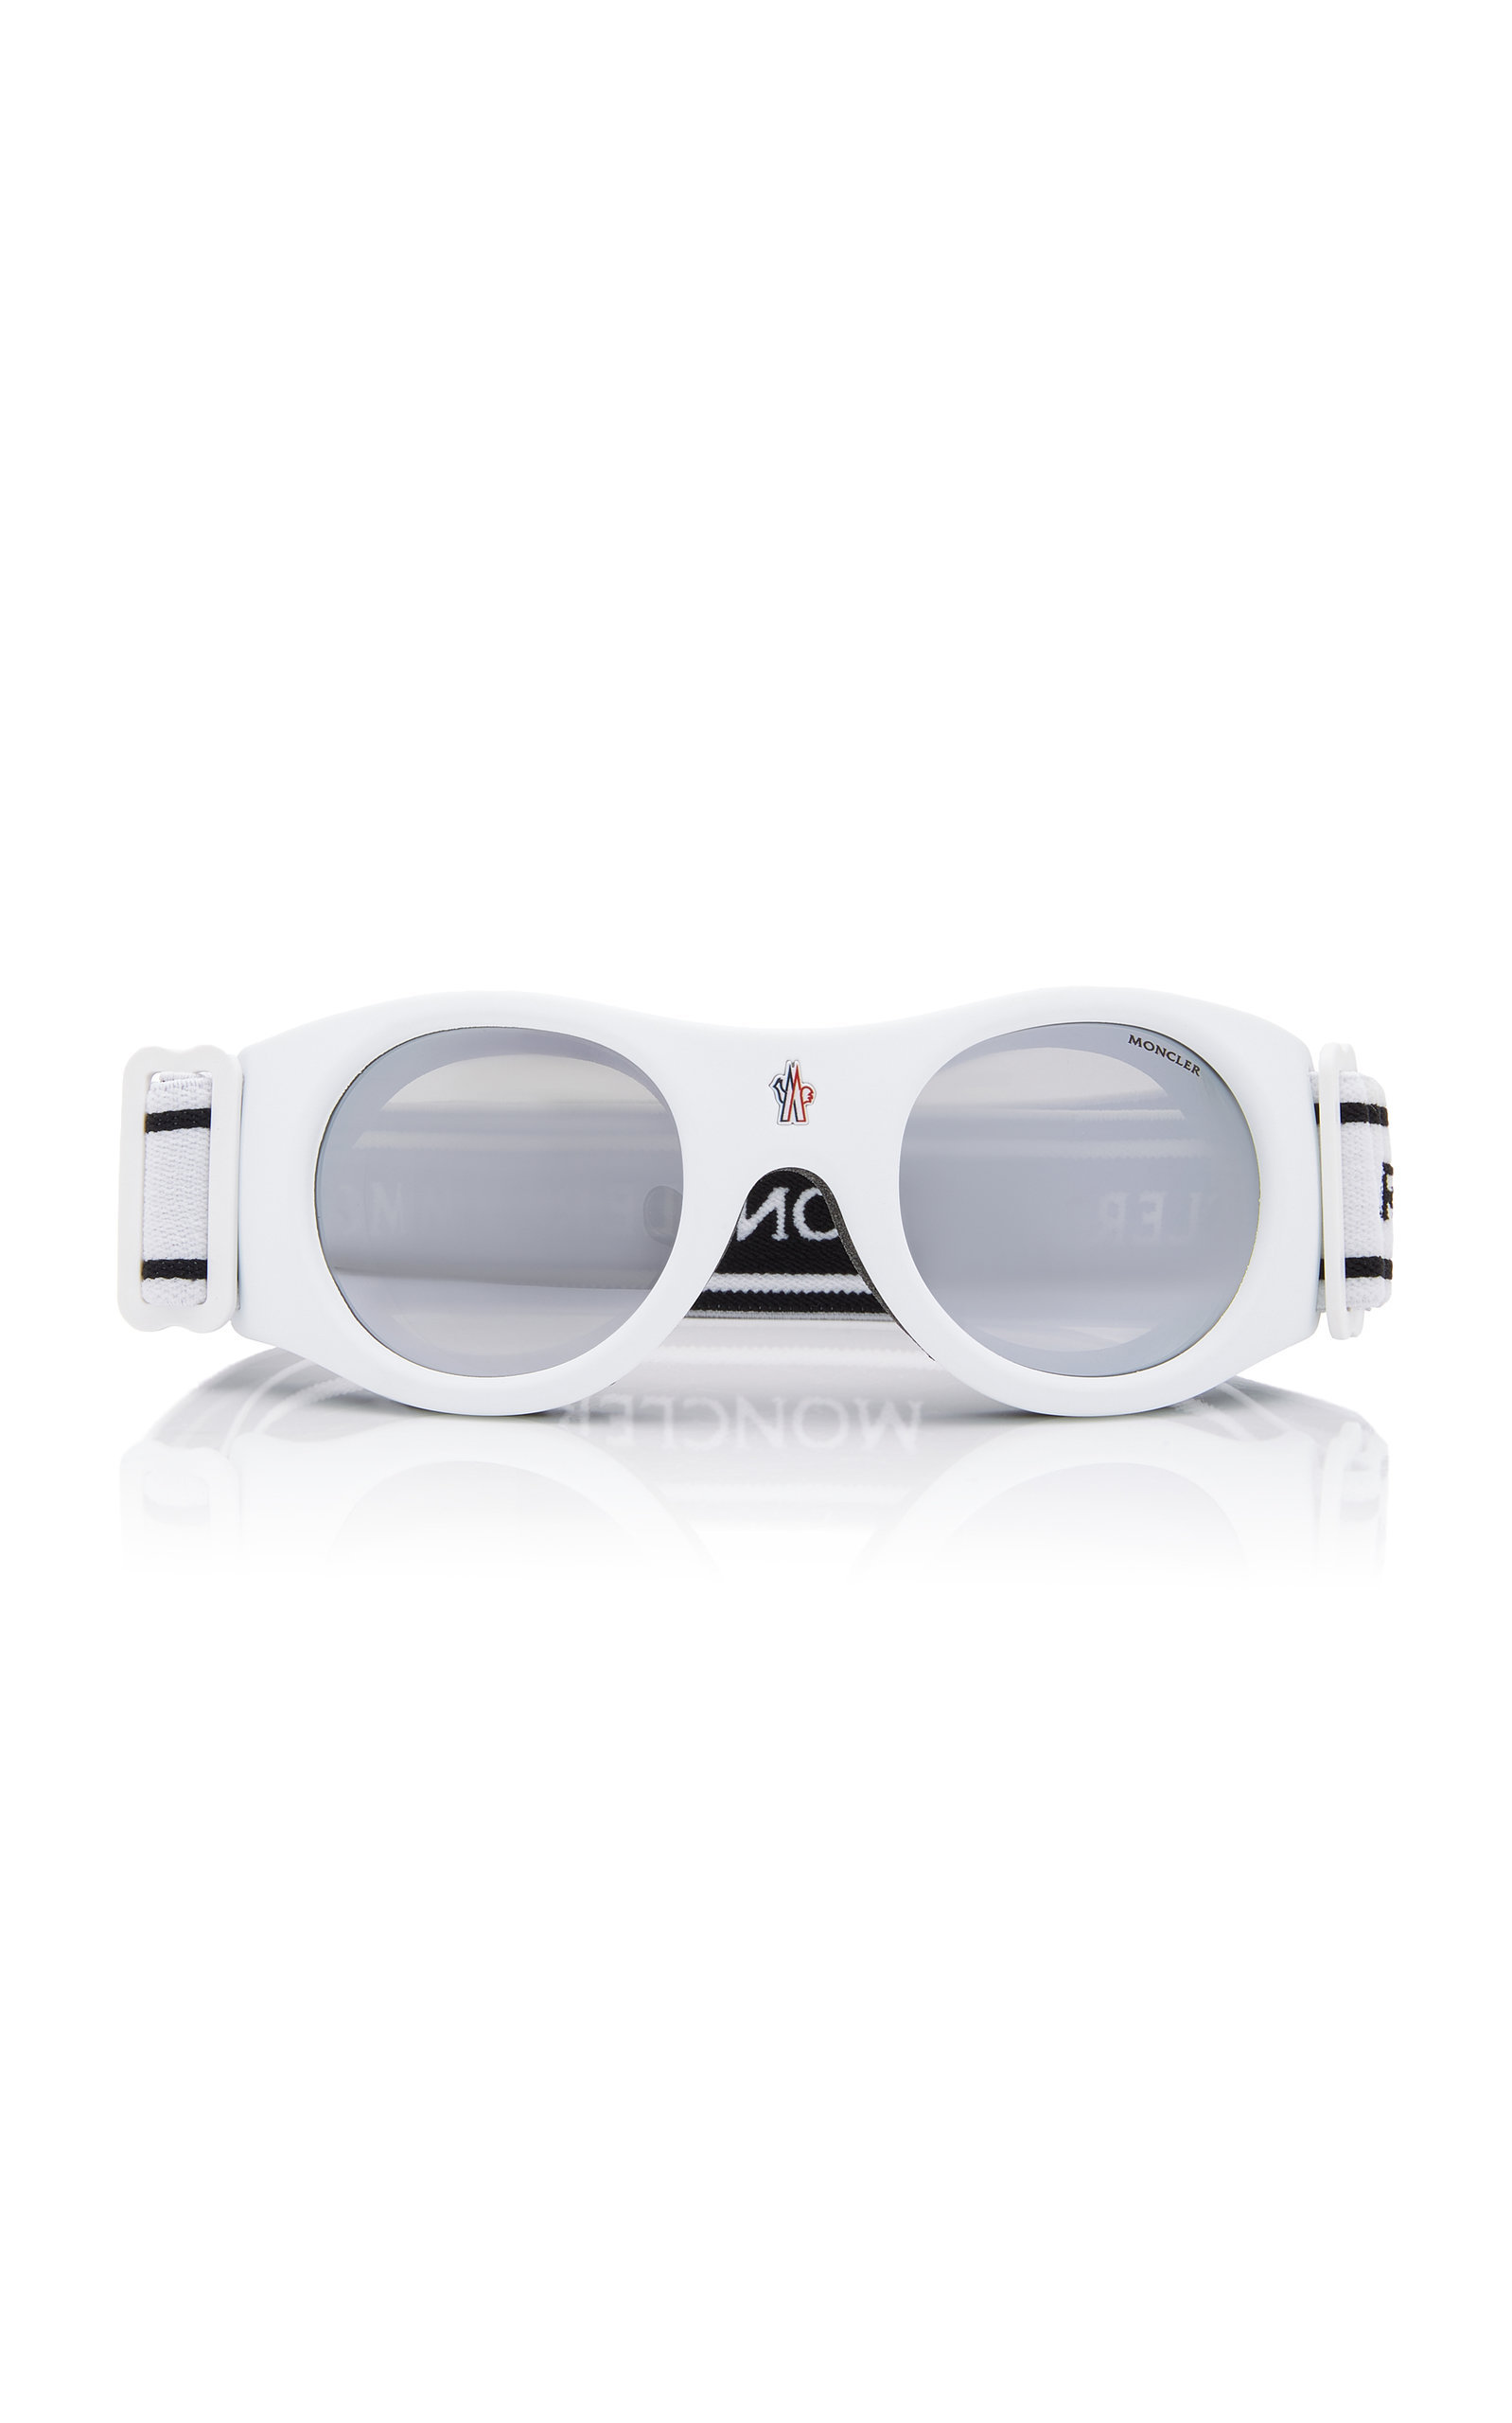 Moncler Sunglasses | $440